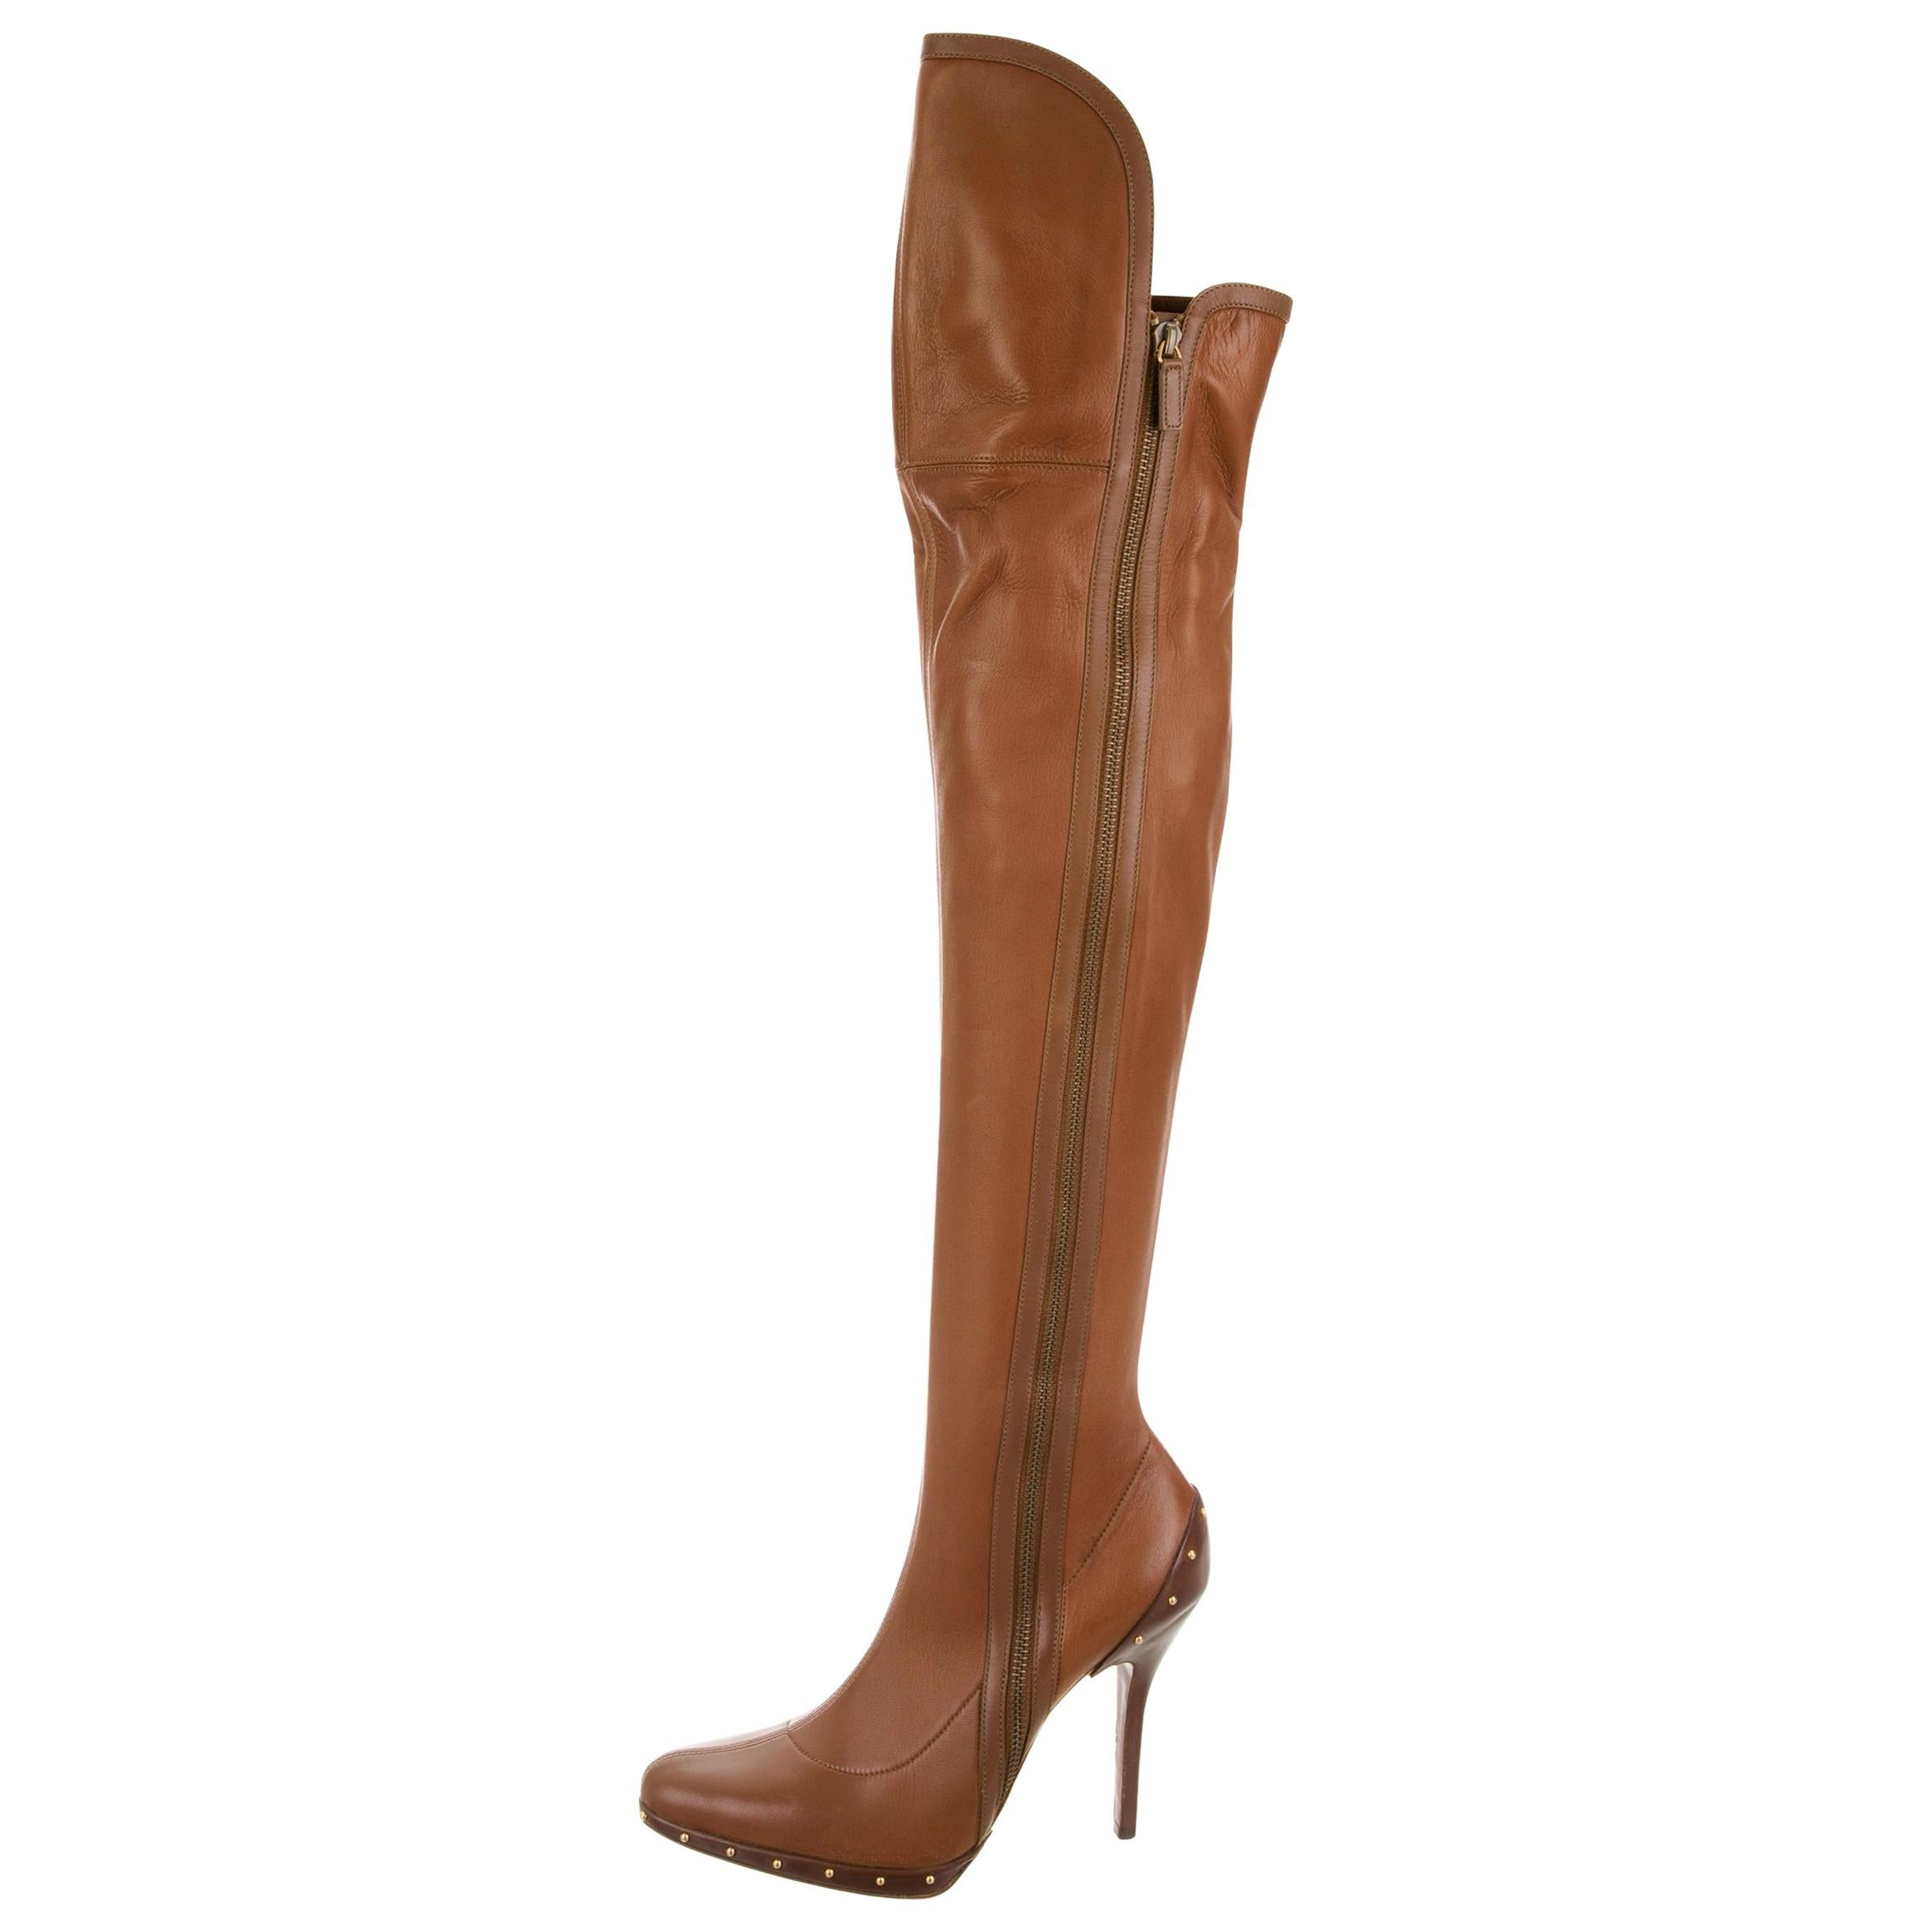 New Tom Ford for Gucci F/W 2003 Campaign Leather Over Knee Gold Studs Boots 9 B